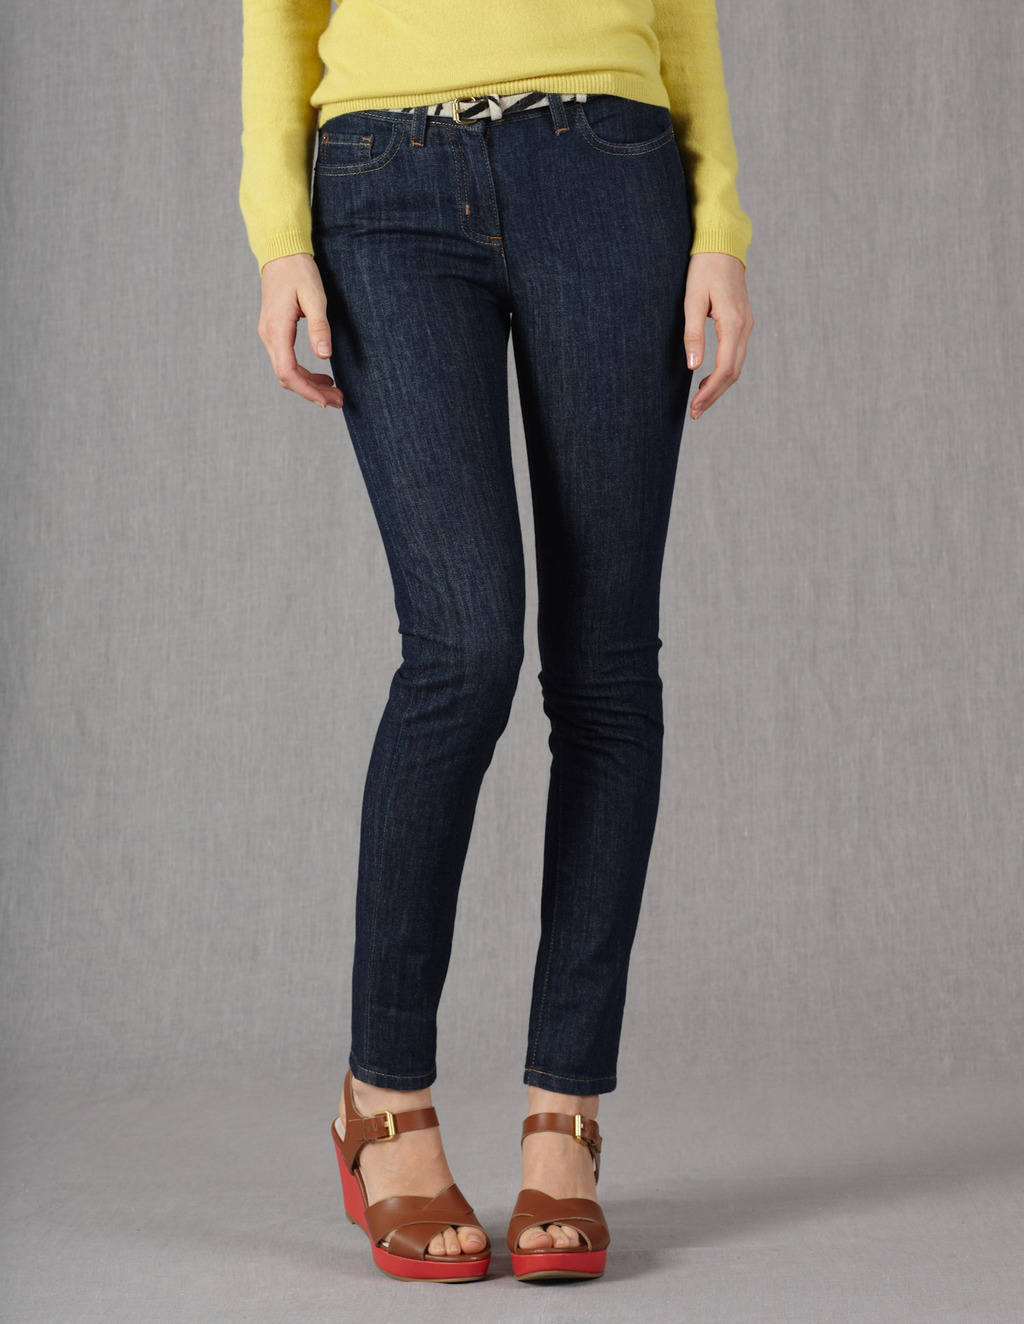 Skinny Ankle Skimmer Jeans - style: skinny leg; pattern: plain; pocket detail: traditional 5 pocket; waist: mid/regular rise; predominant colour: navy; occasions: casual; length: ankle length; fibres: cotton - stretch; jeans detail: dark wash; texture group: denim; pattern type: fabric; season: s/s 2013